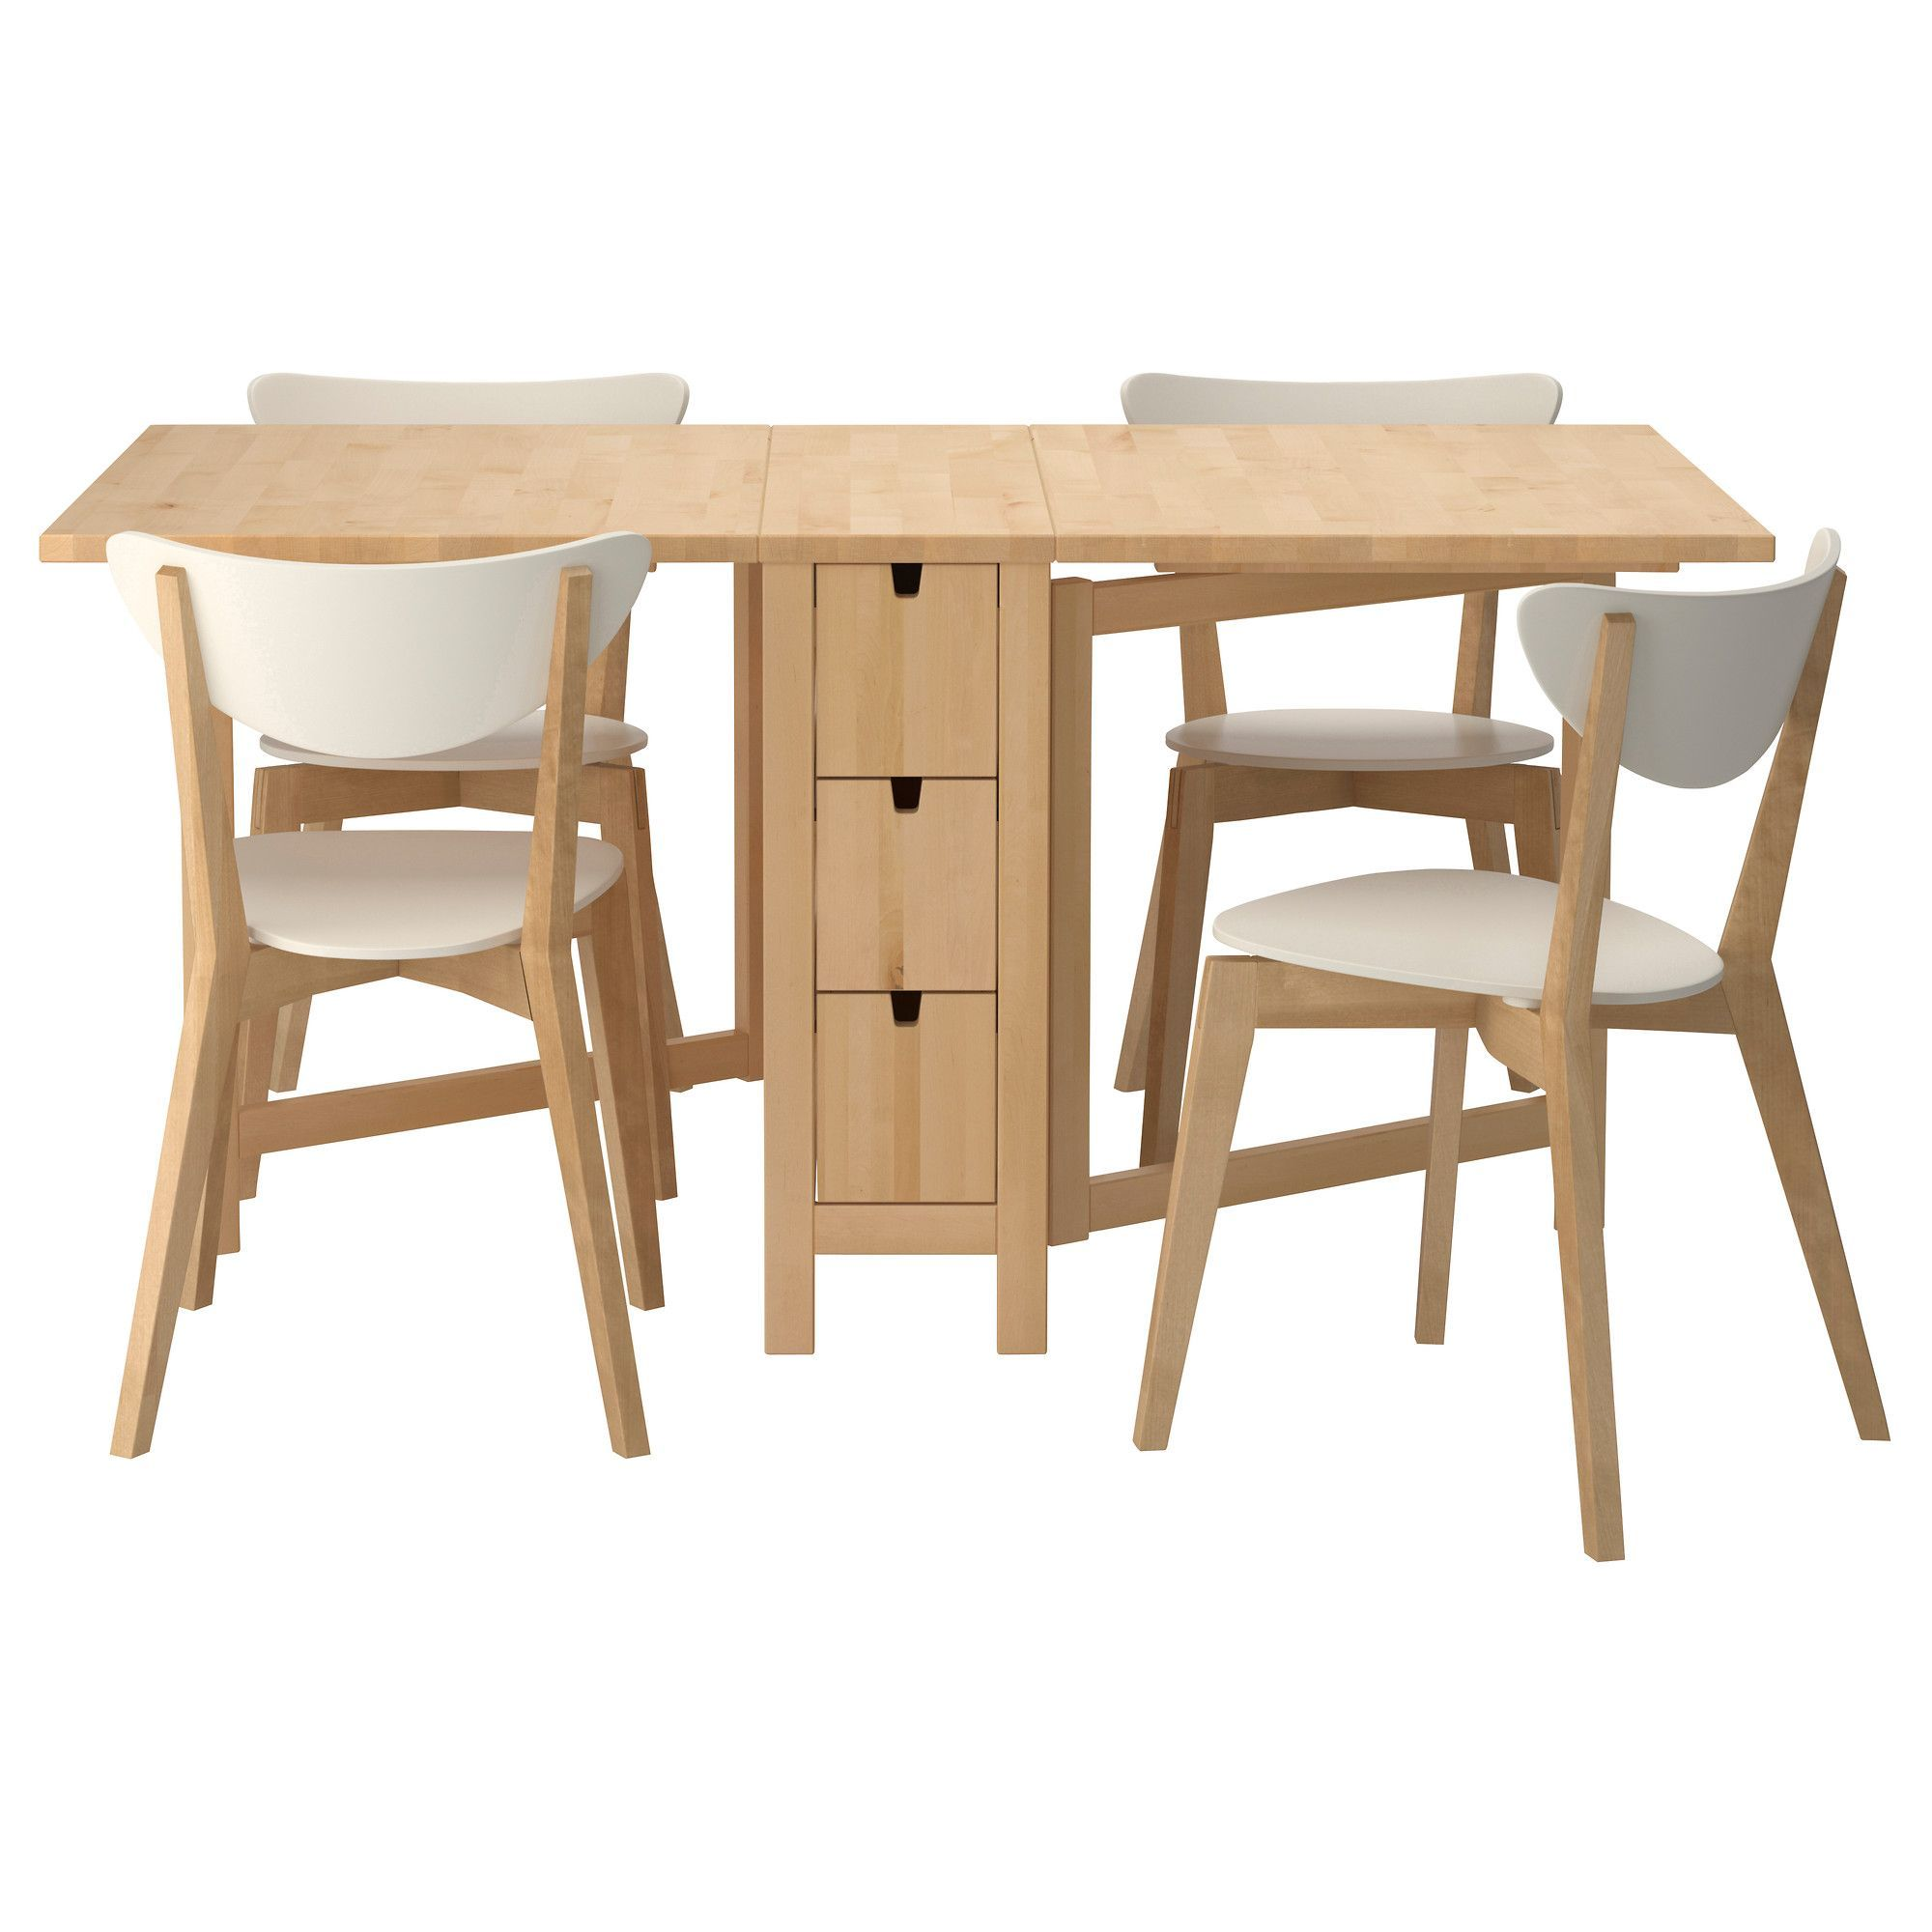 Cheap Folding Dining Table And Chairs Gorgeous Small Dining Table That Can Be Folded Complete